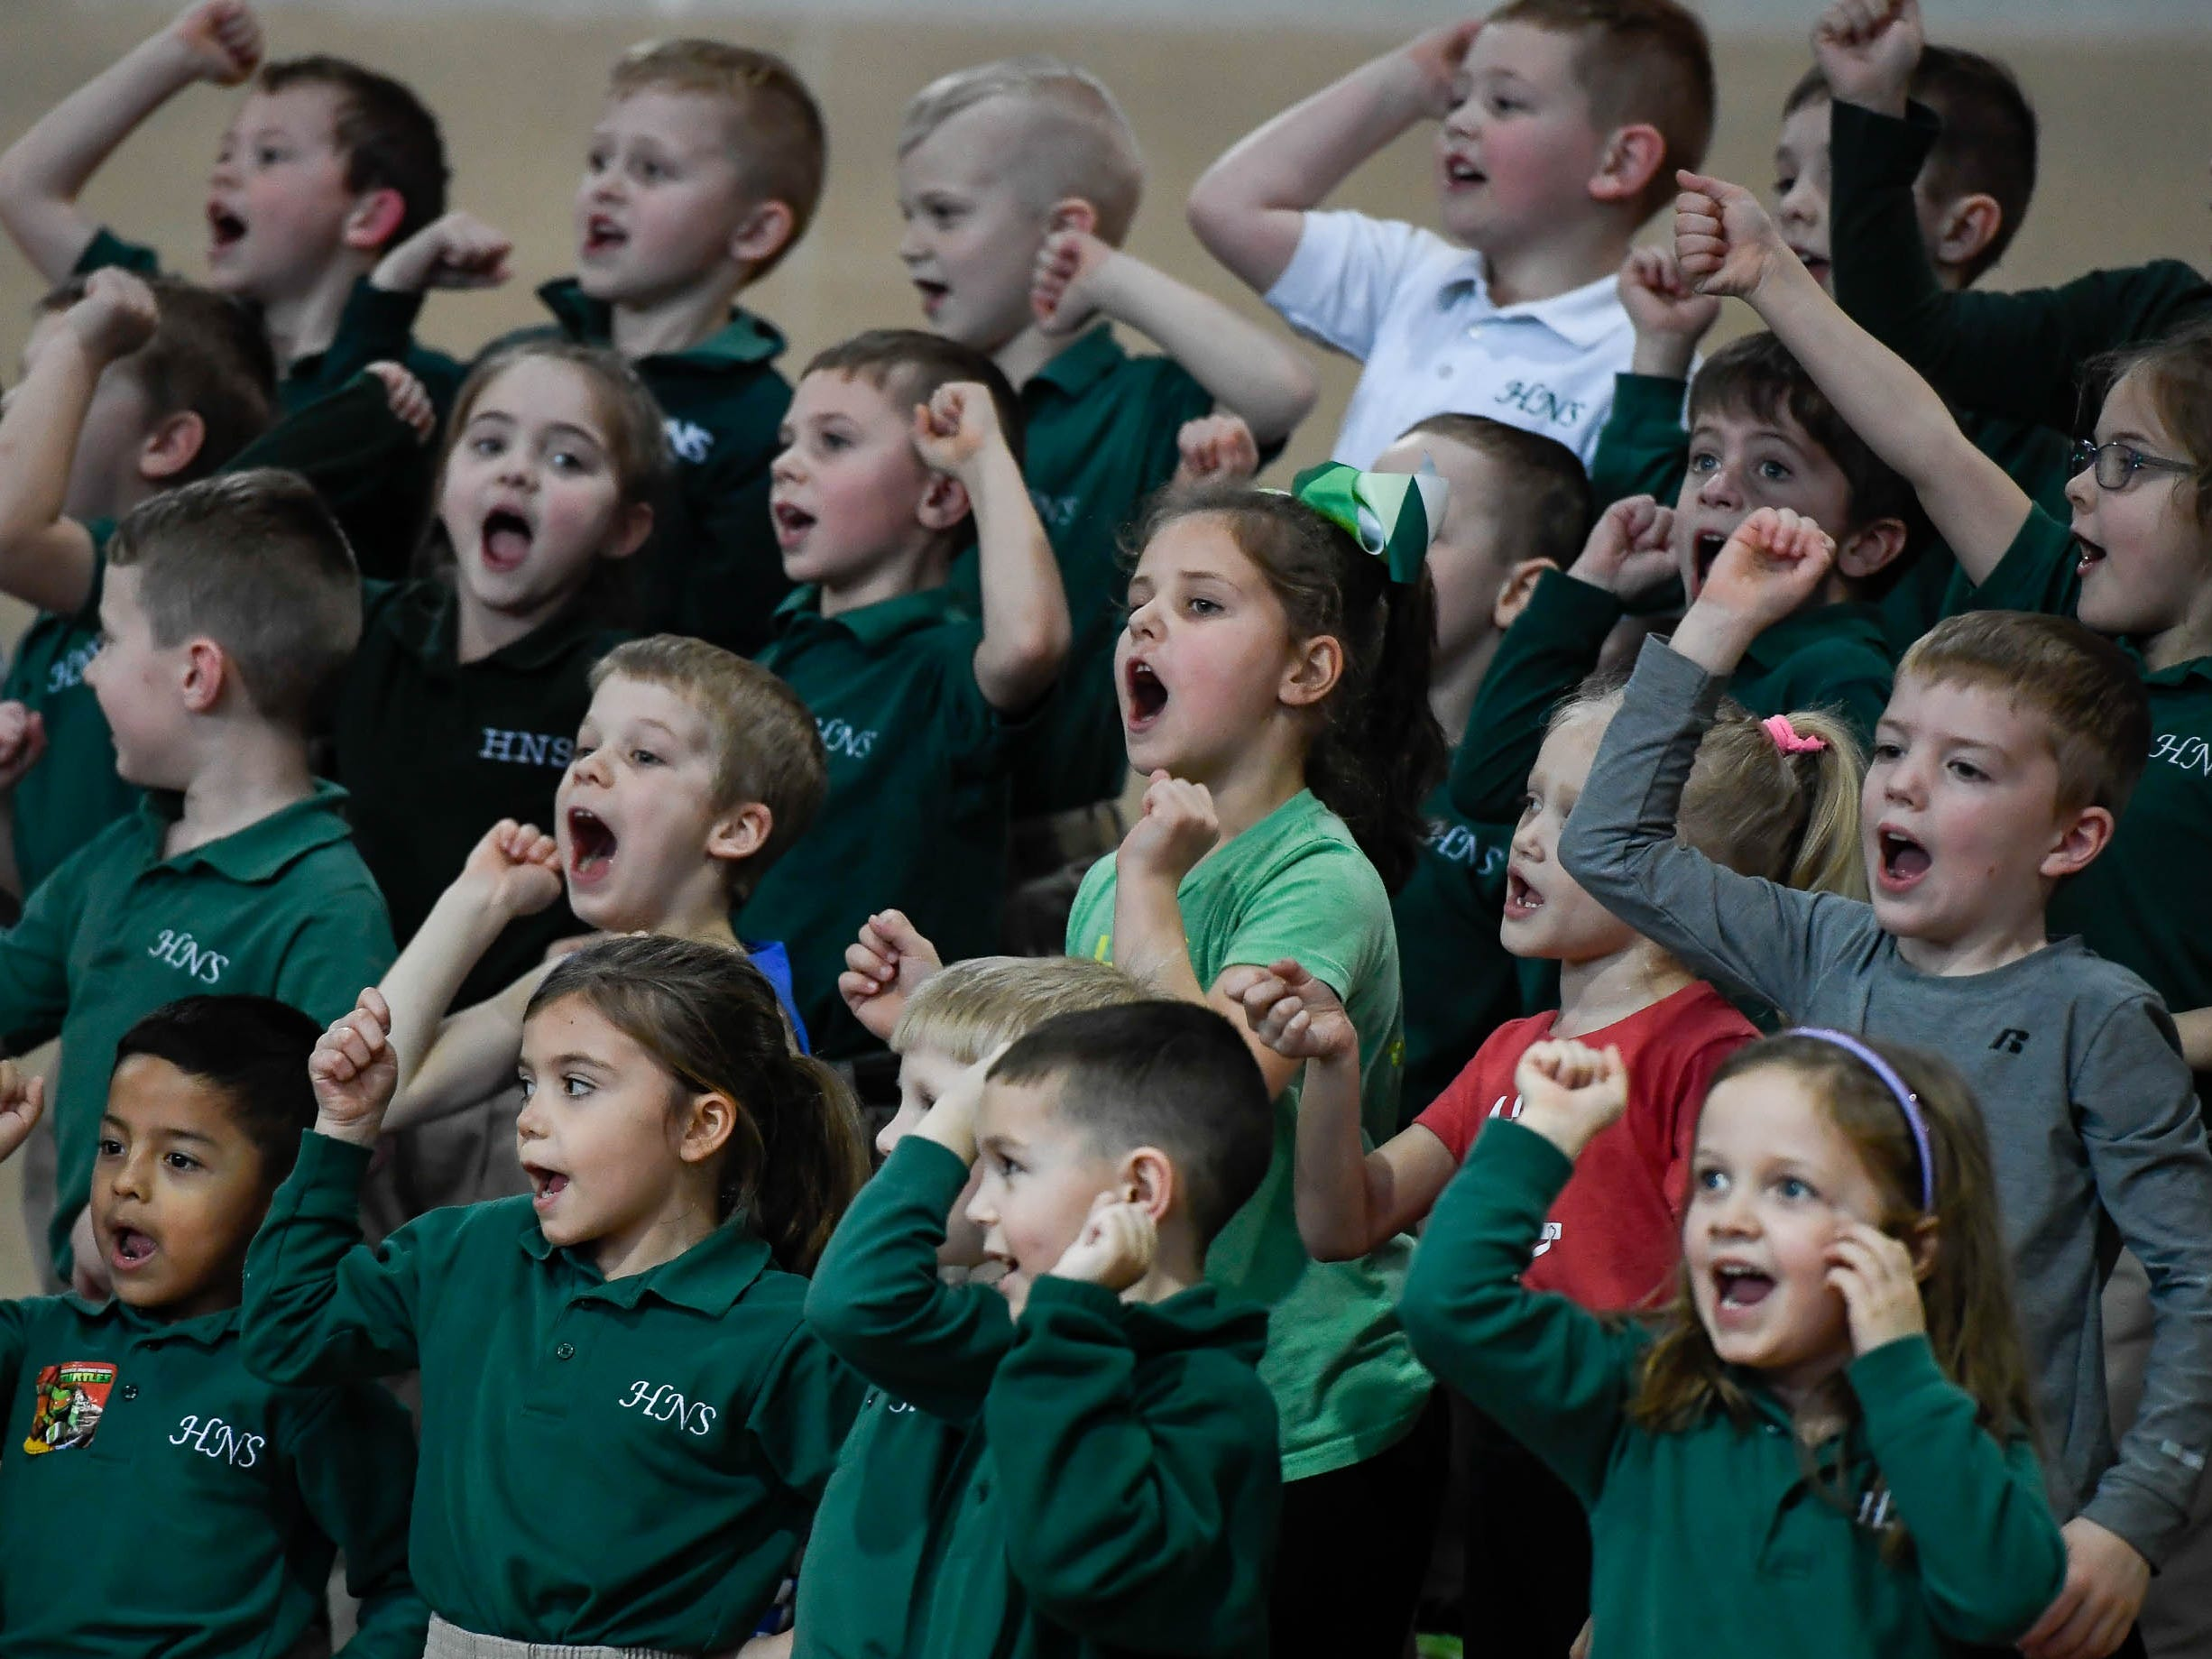 Holy Name kindergarten students sing he school's fight song during the Catholic Schools Week Talent Show at Henderson's Holy Name School Wednesday, February 6, 2019.